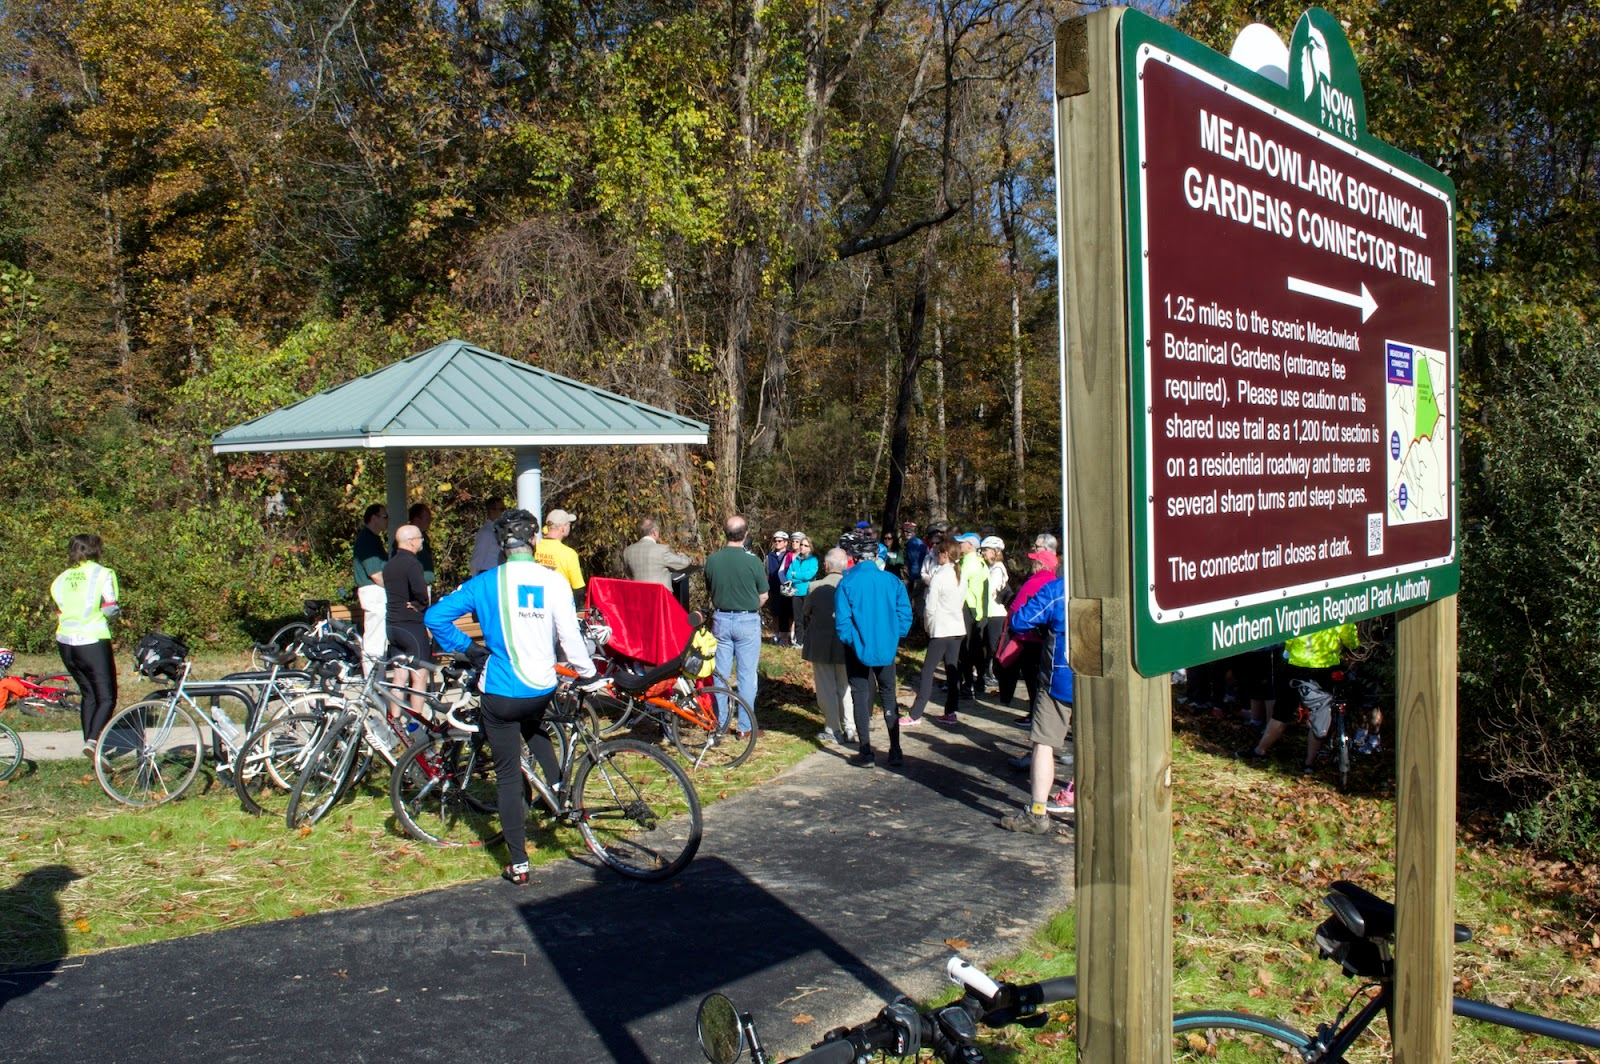 Blog - Fairfax Alliance for Better Bicycling (FABB)